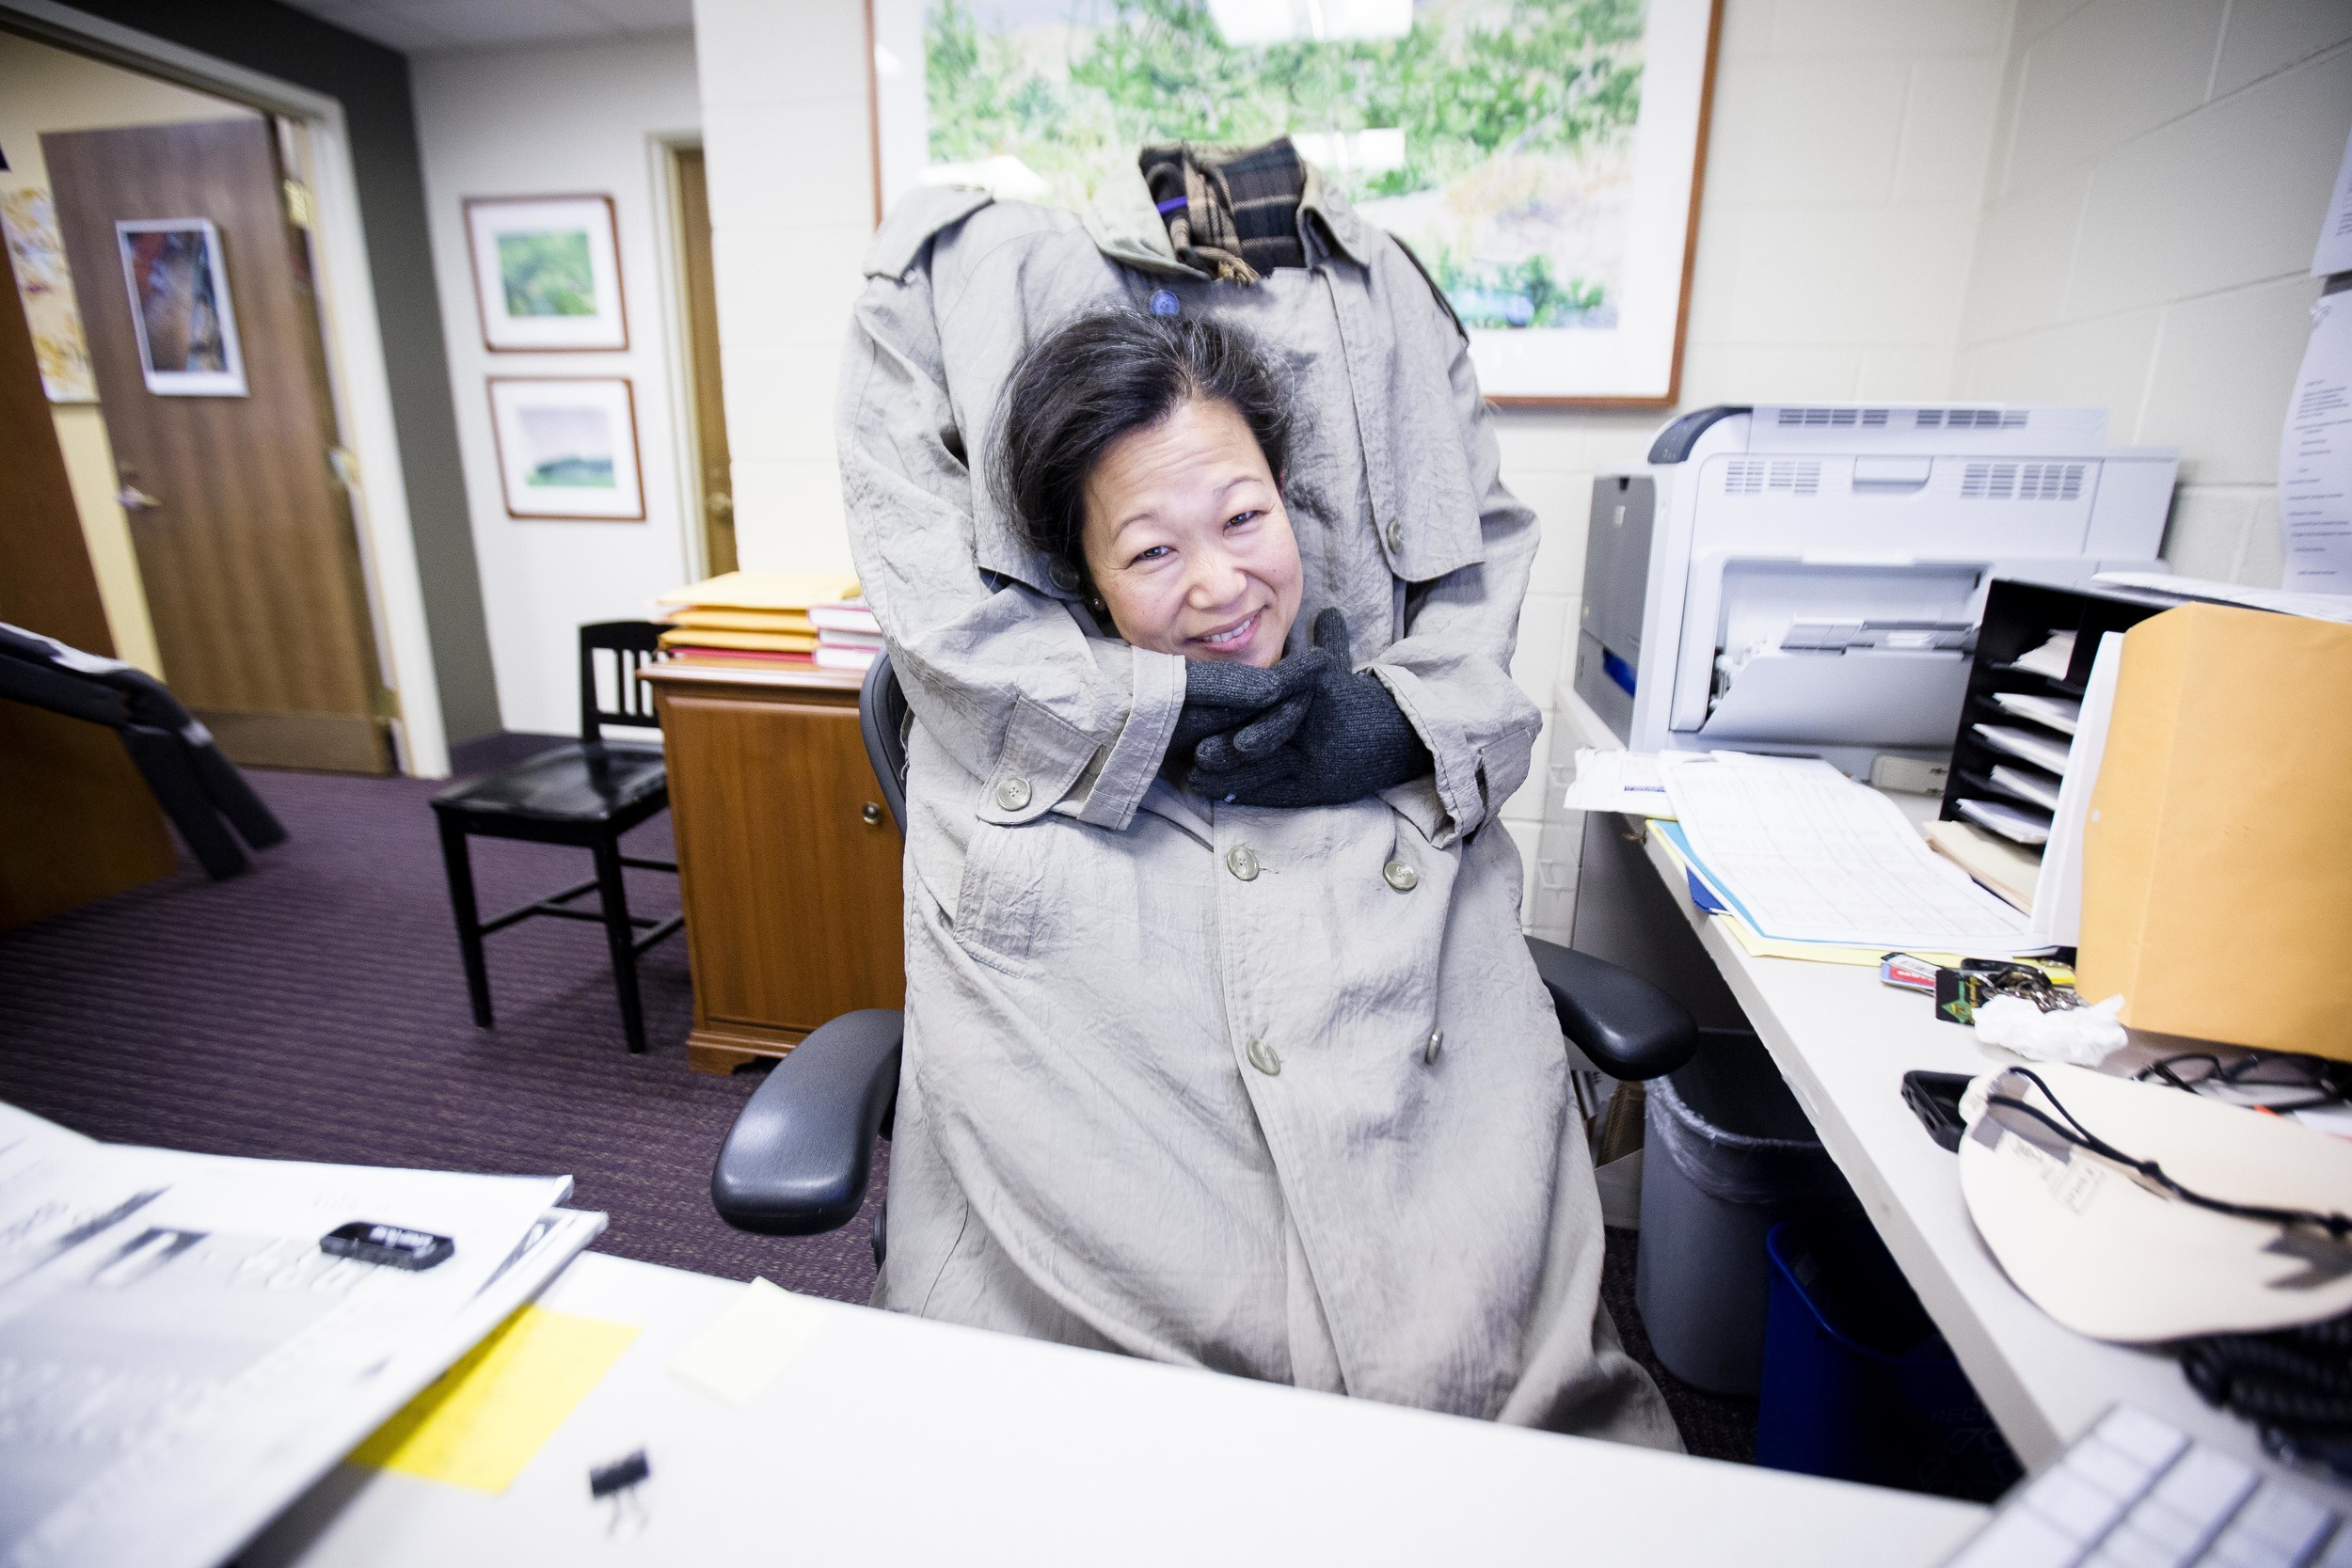 Harvard Department of Music facility has been doing Halloween celebration for the past 10 years. Eva Kim, Head of the Charles. Photo by Ann Wang